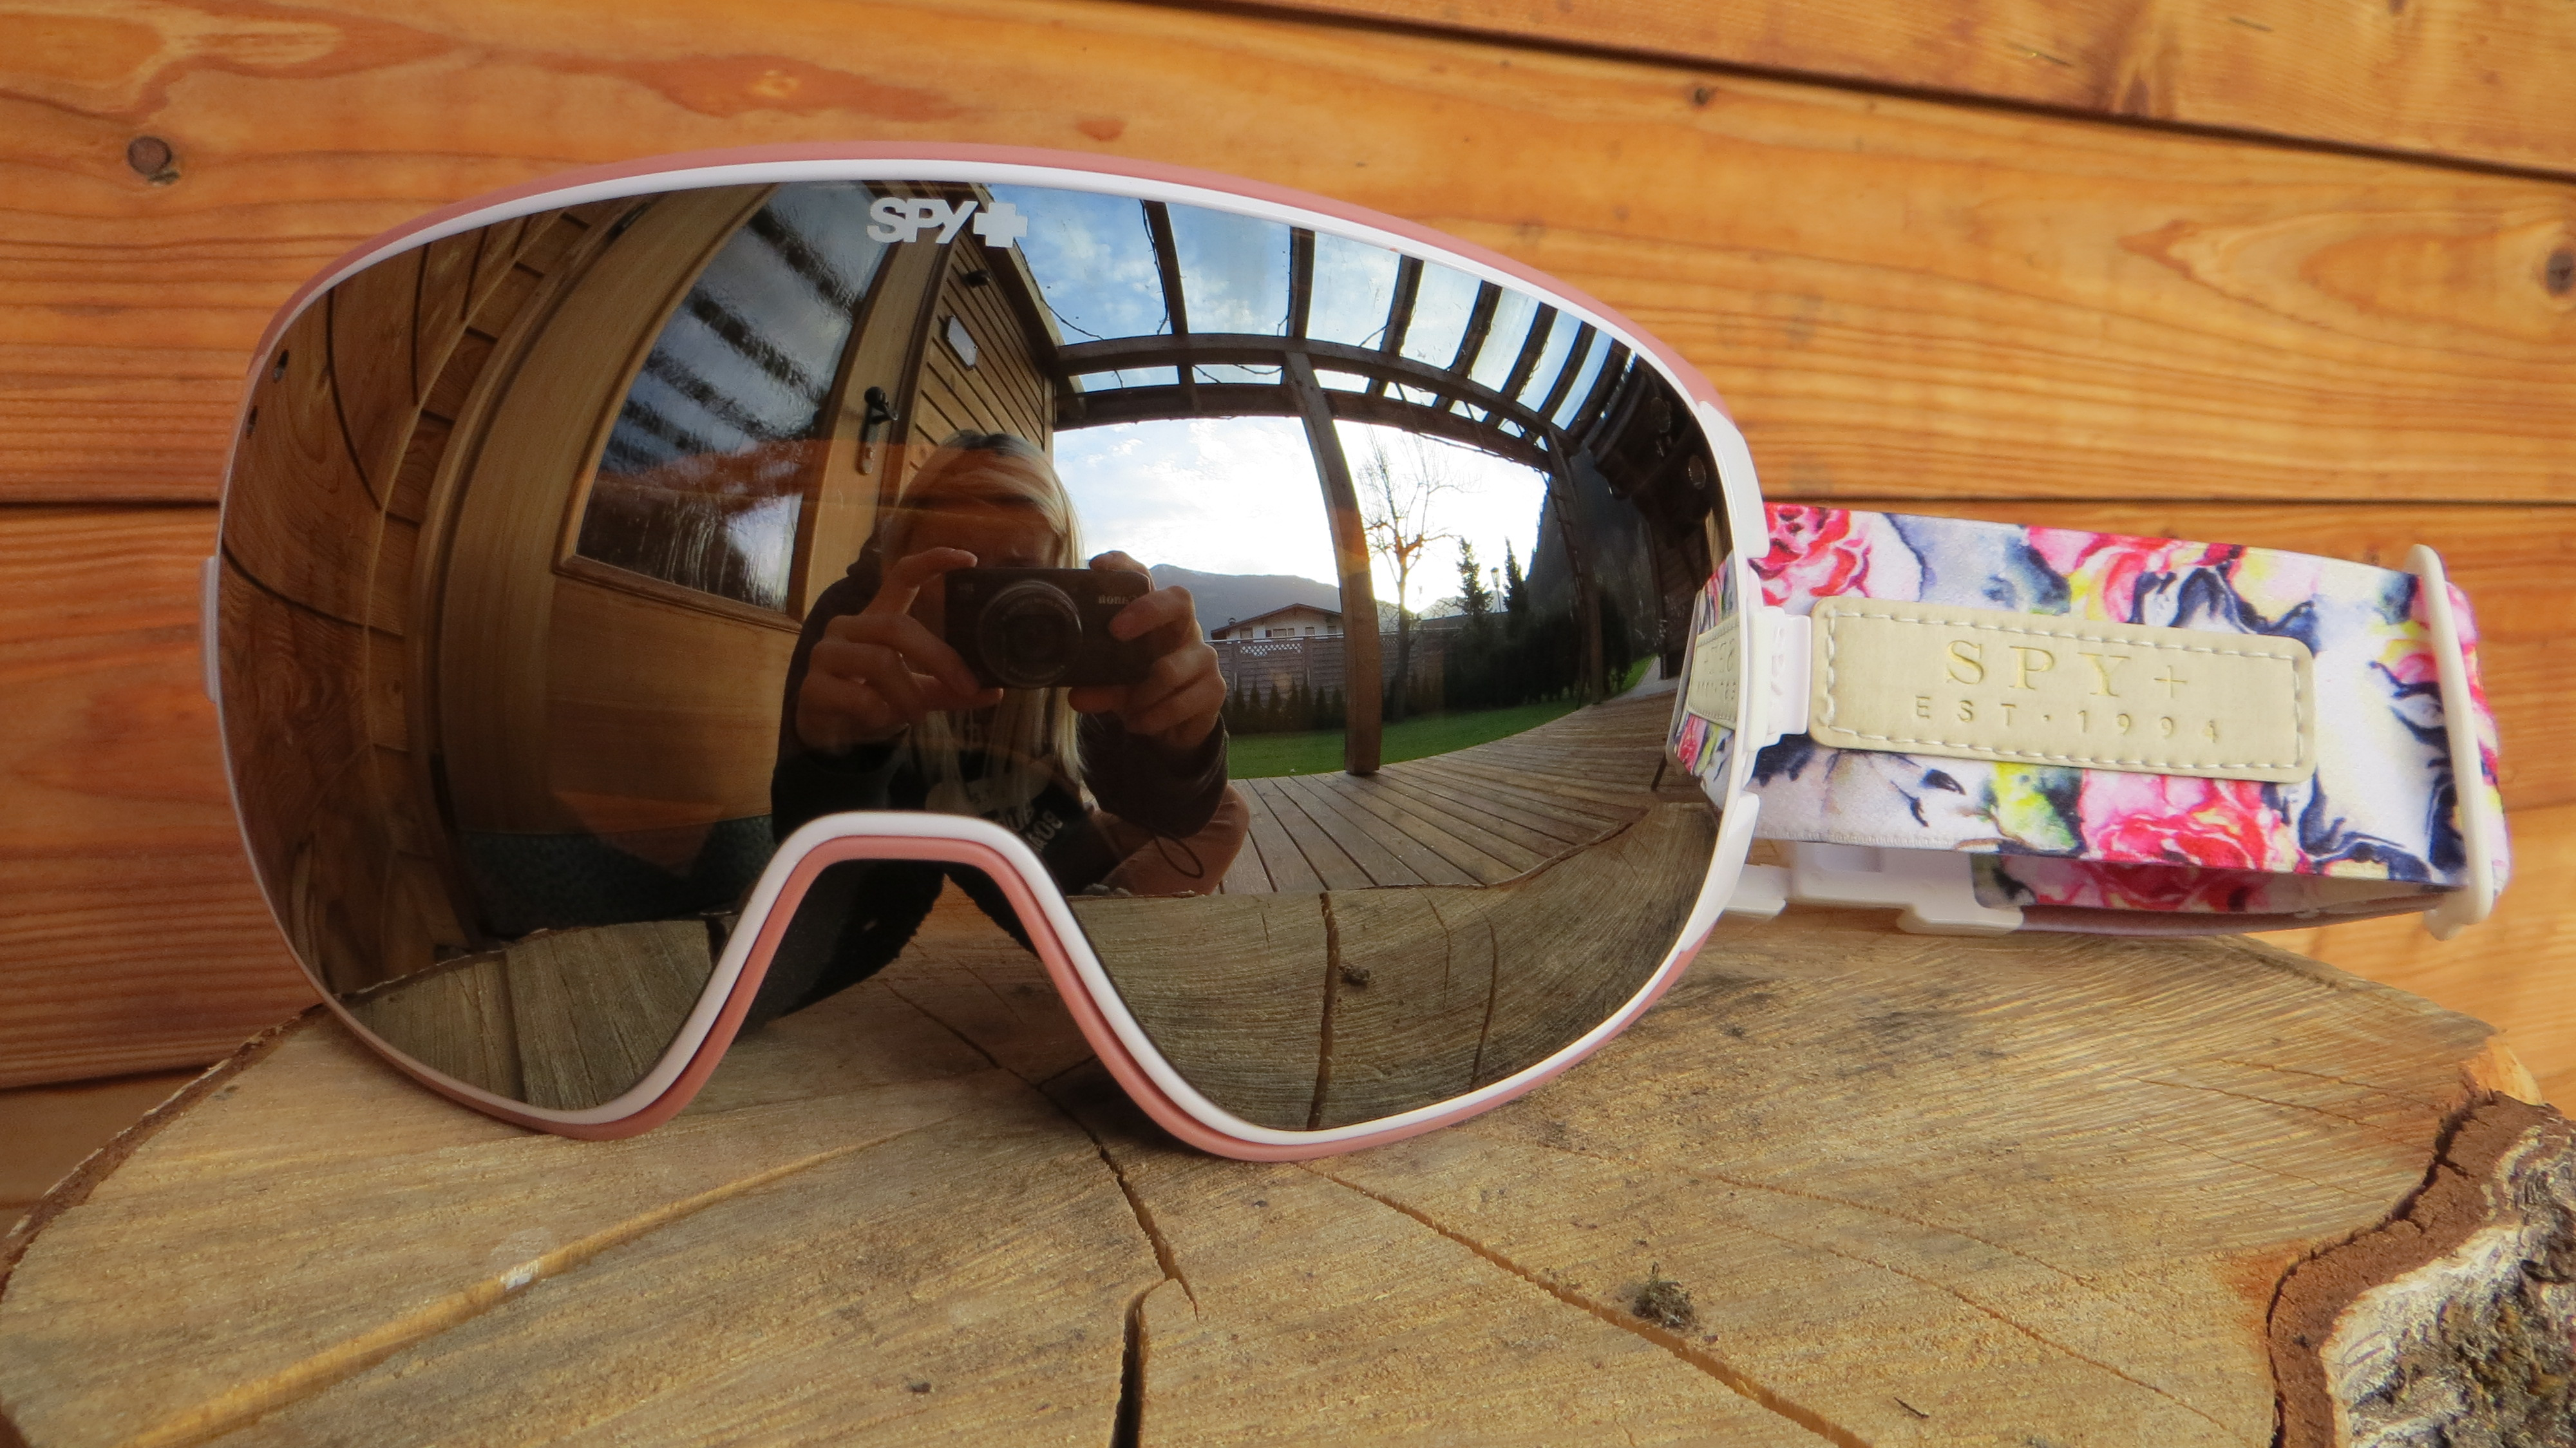 Christmas gift ideas for your snowboarding girlfriend 2014/2015 ...